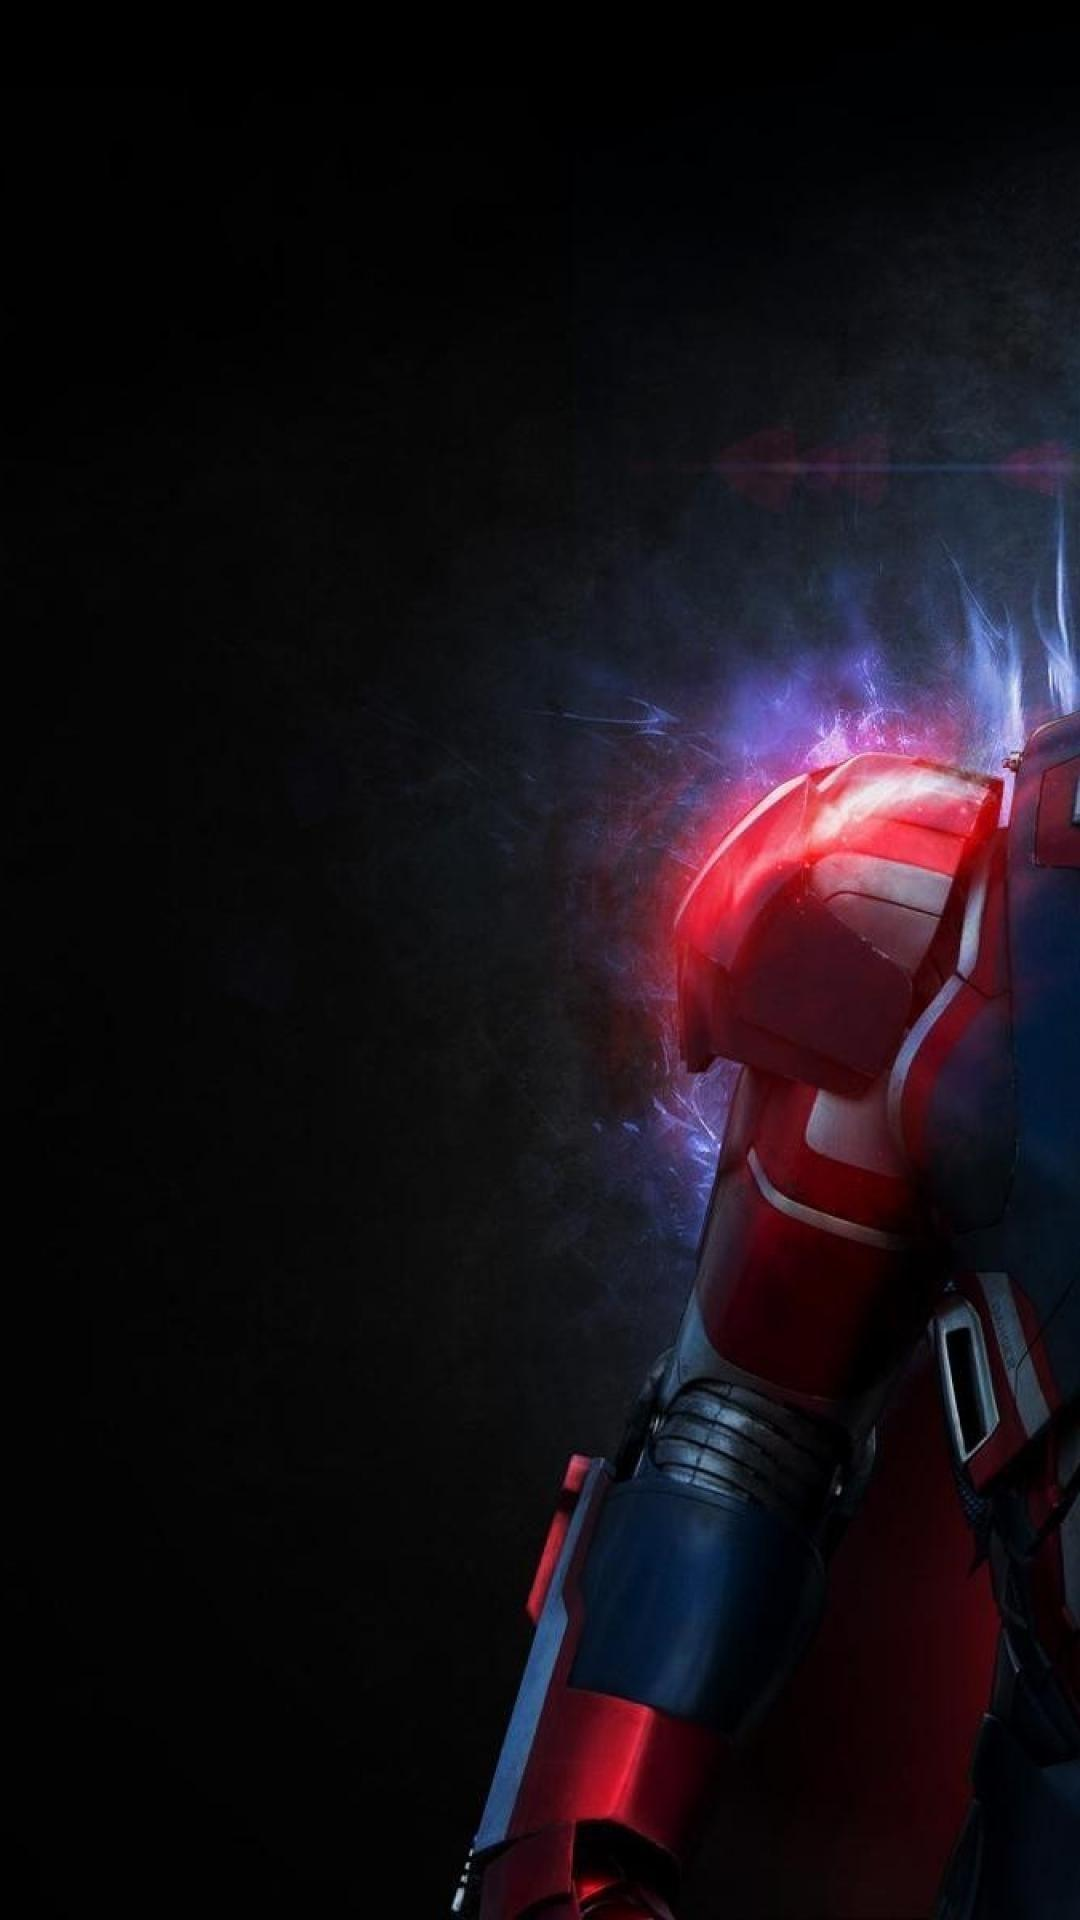 Ironman 3 Wallpapers For Mobile - Wallpaper Cave